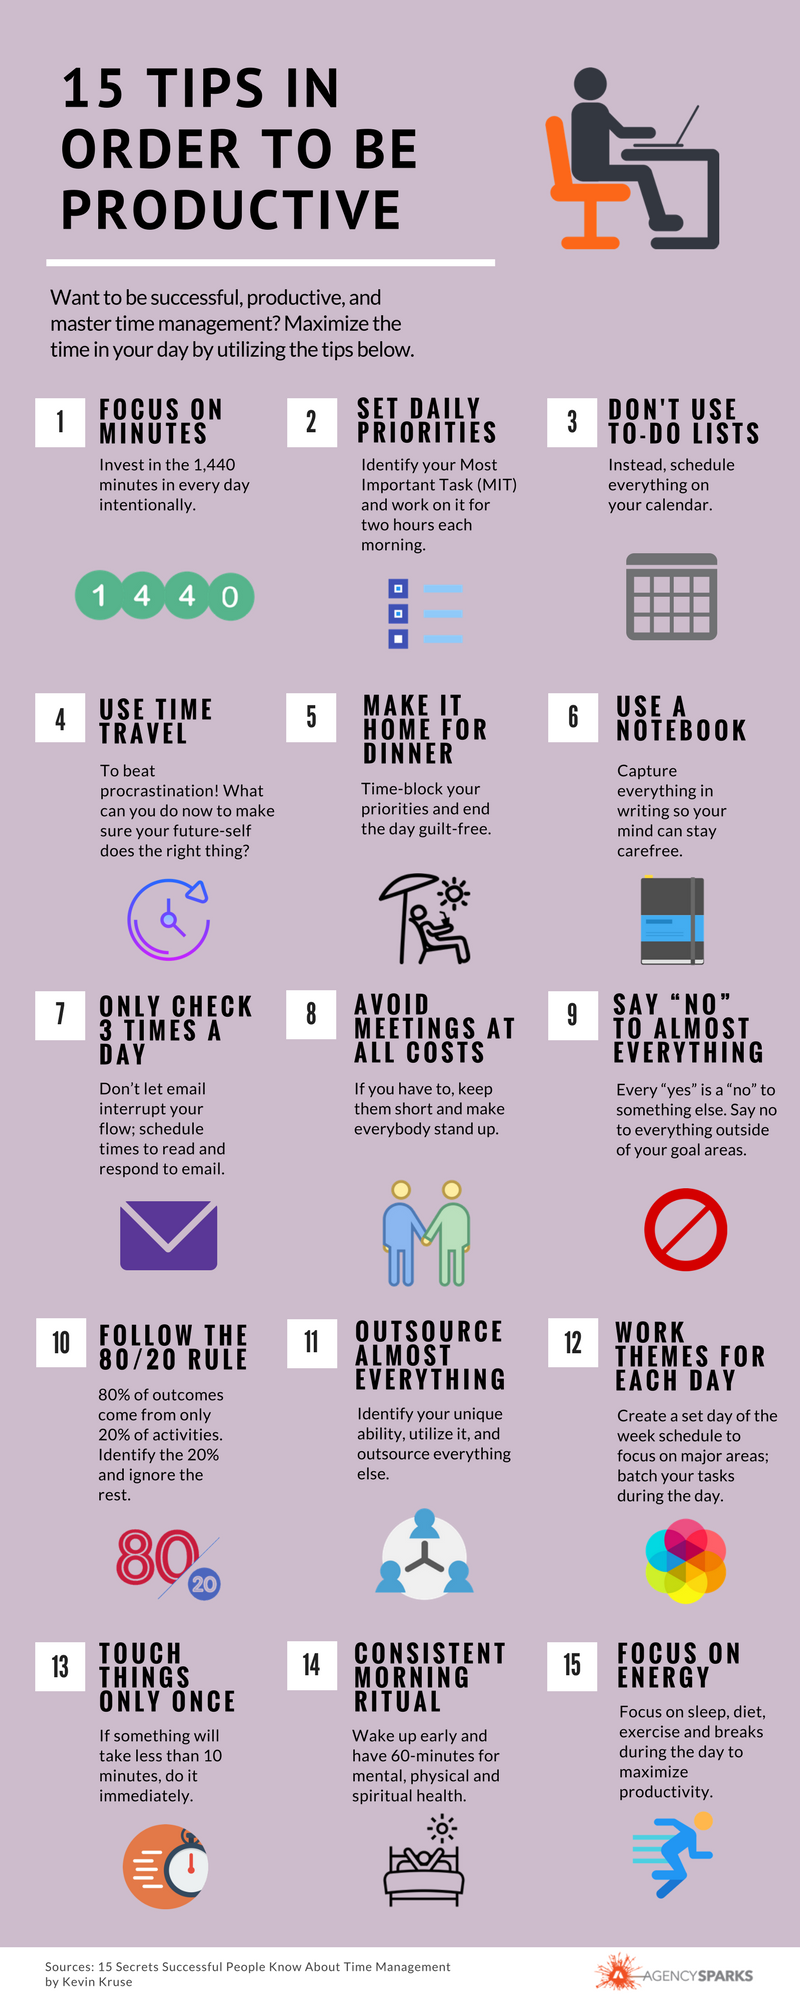 In order to be a more productive marketer with efficient processes, look at these 15 tips for productivity. Based on the book  15 Surprising Things Productive People do Differently  written by Kevin Kruse, marketers should follow these steps to make their day-to-day more effective.